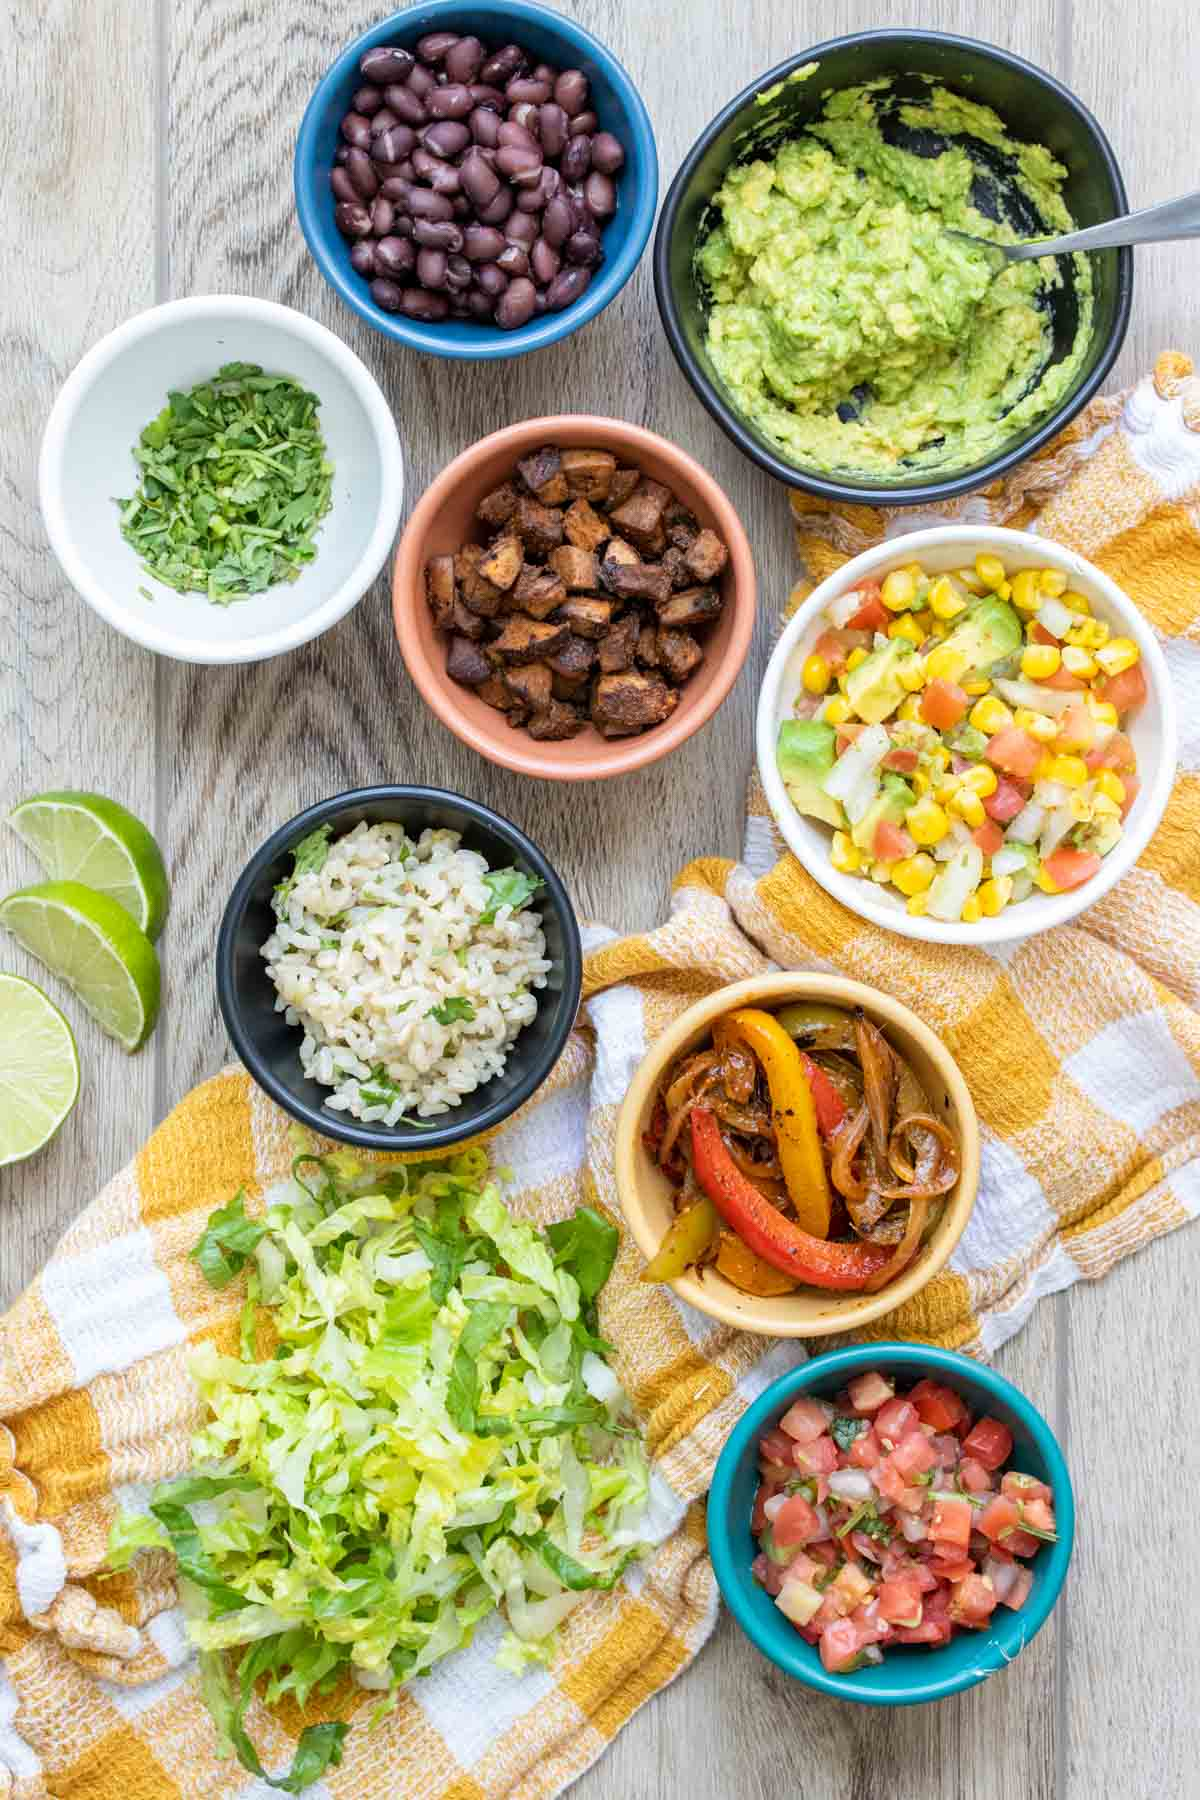 Different colored bowls on a checkered towel filled with ingredients to build a burrito bowl